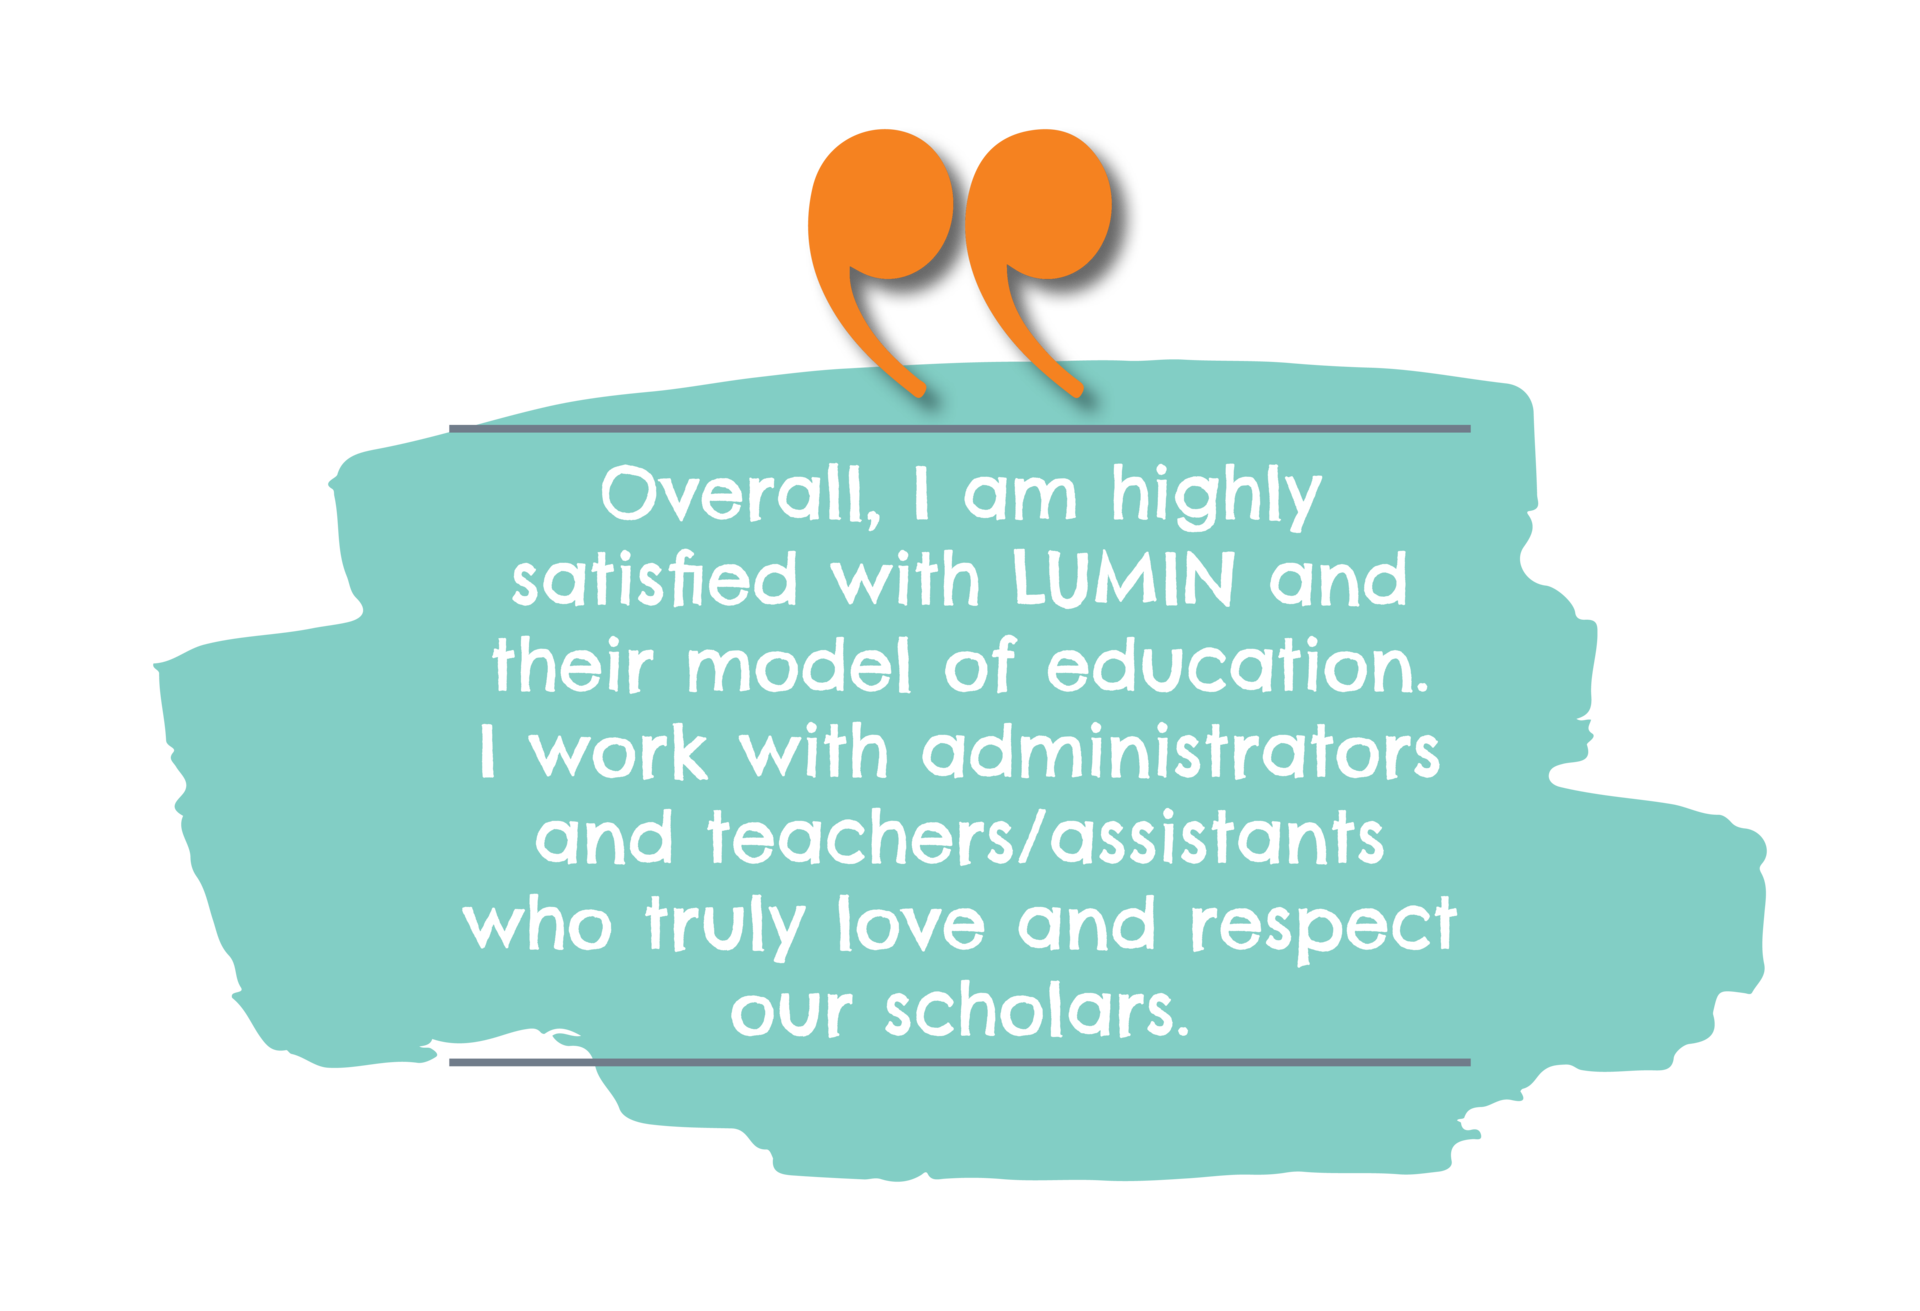 Overall, I am highly satisfied with LUMIN and their model of education. I work with administrators and teachers/assistants who truly love and respect our scholars.